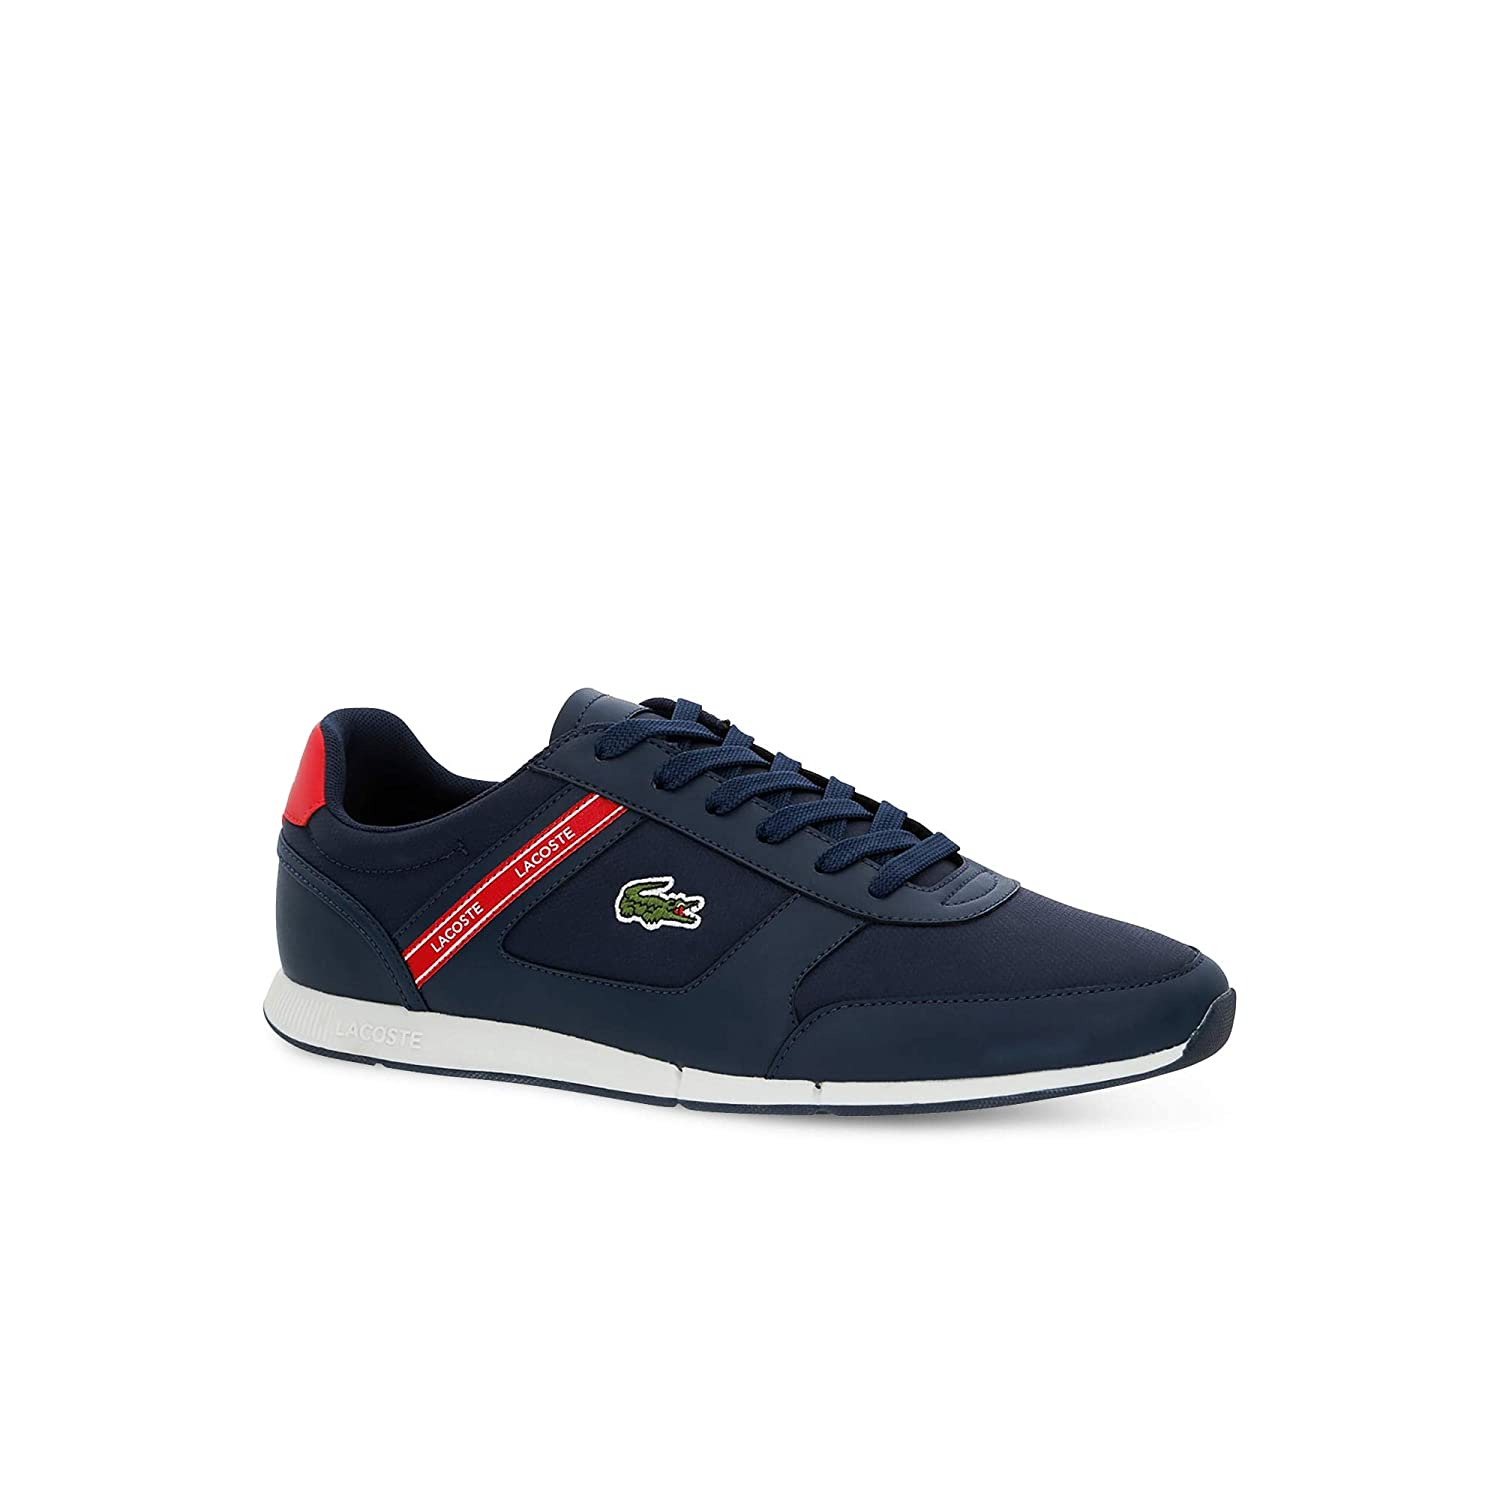 Navy rouge Lacoste - Chaussures Homme Sportswear - 37CMA0064